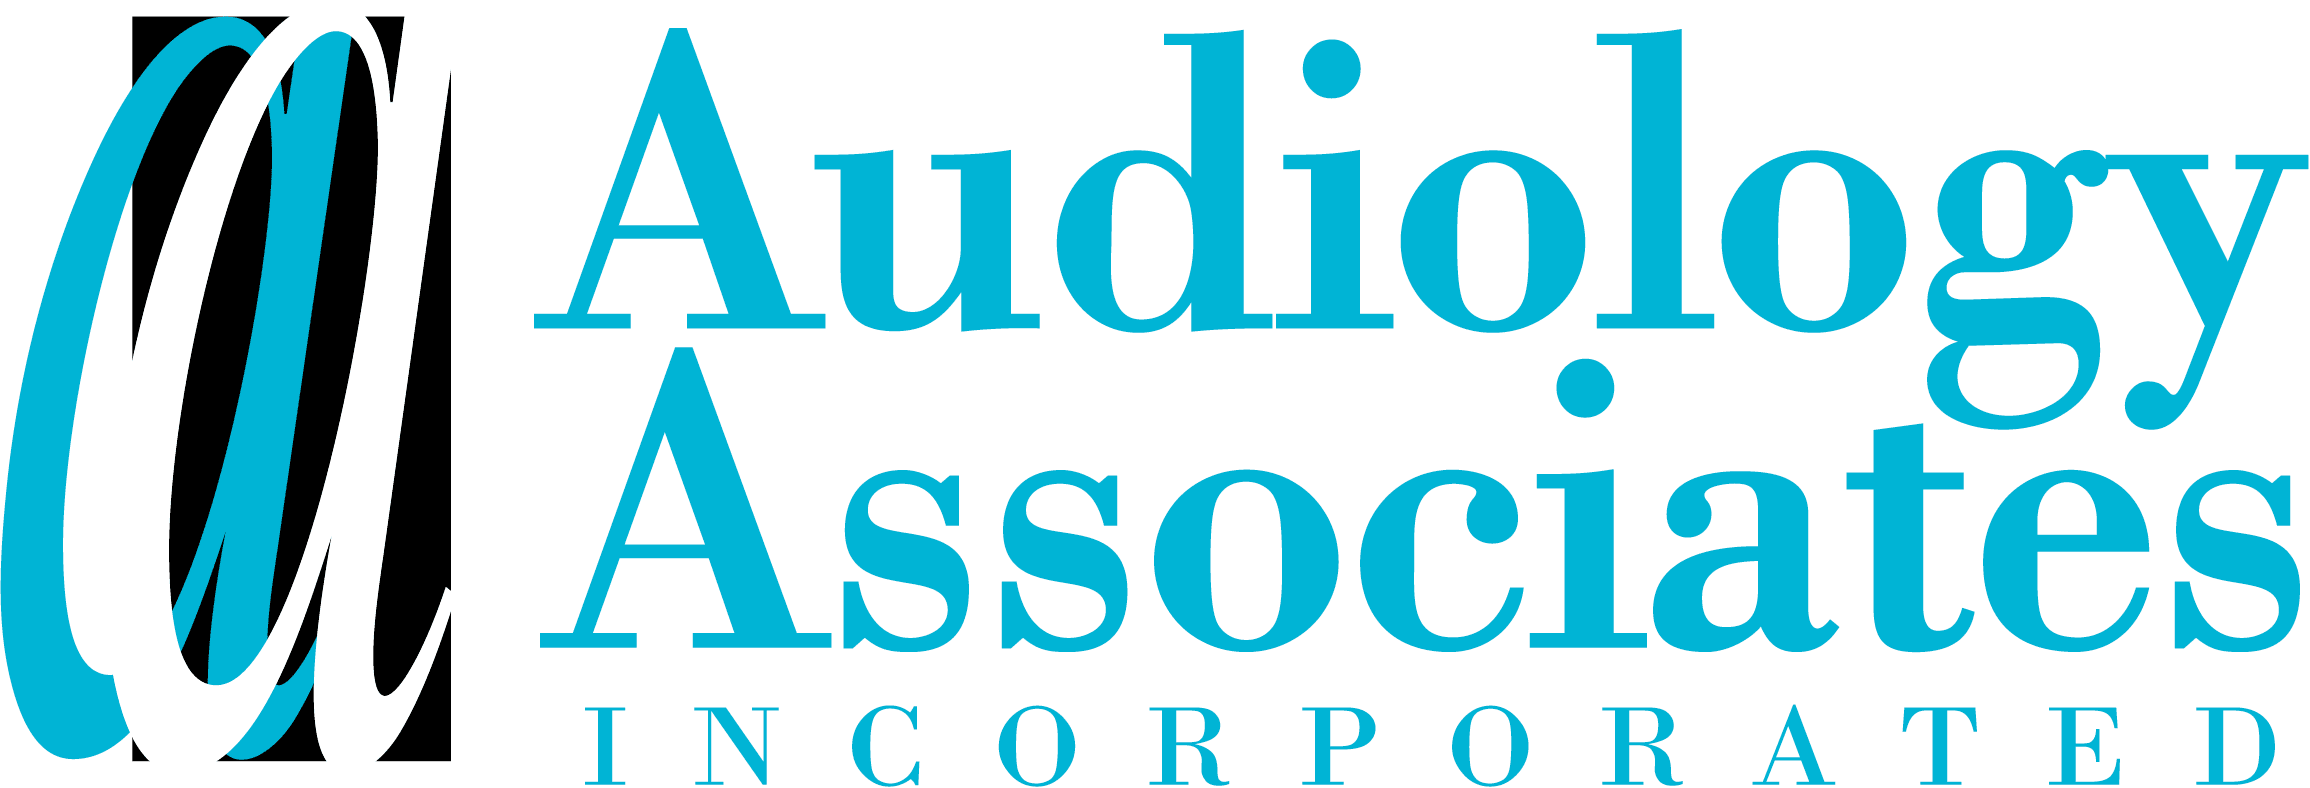 Audiology Associates header logo